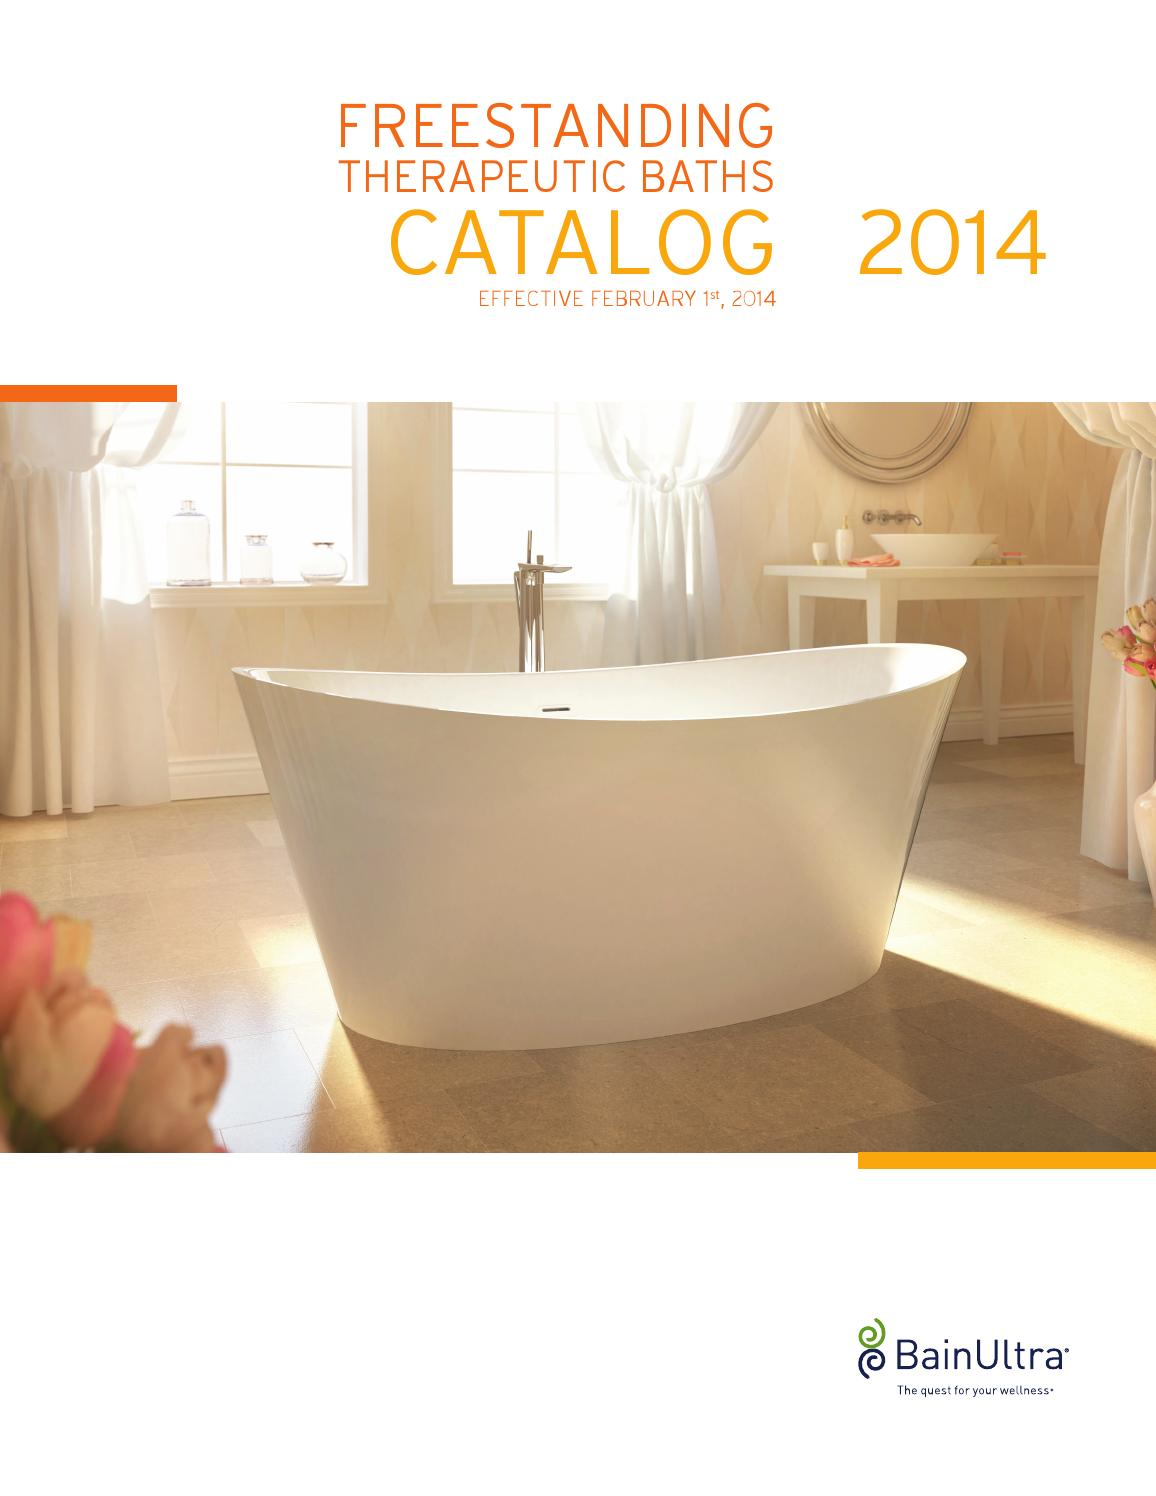 2014 FREESTANDING Therapeutic Baths CATALOG by BainUltra - issuu